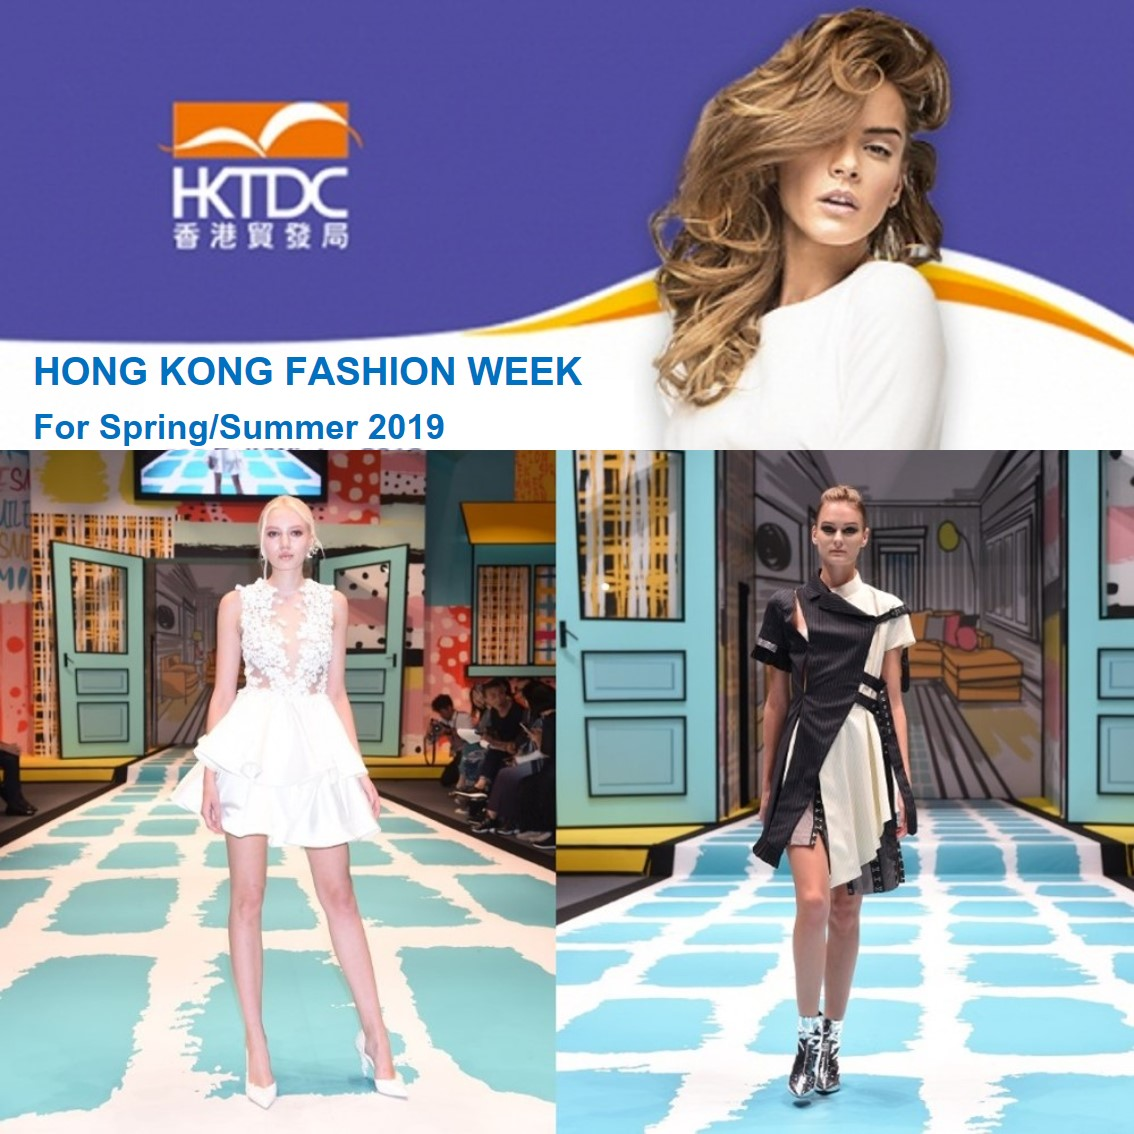 Hong Kong Fashion Week for Spring/Summer 2019